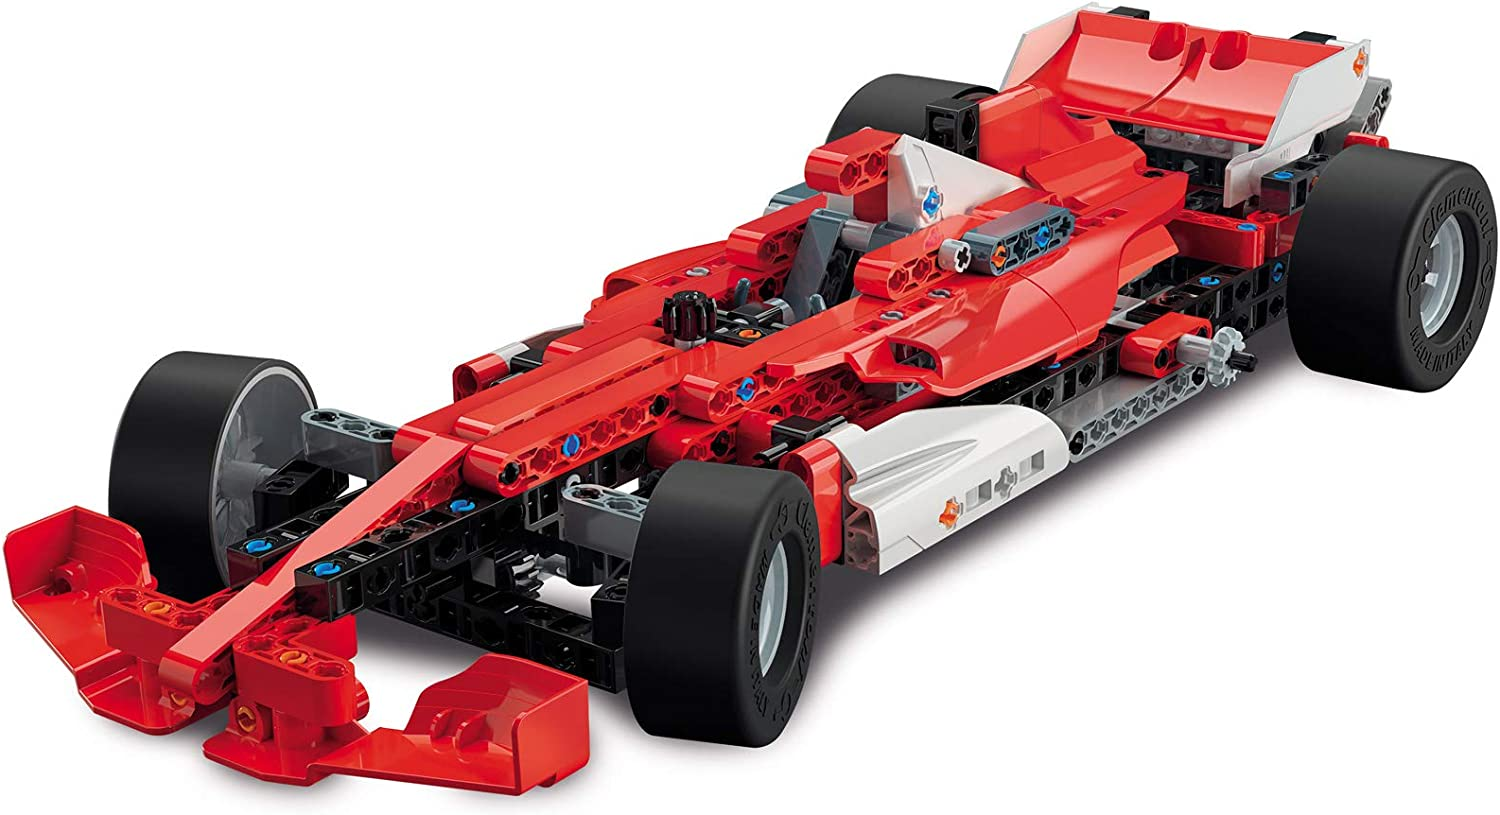 1018 Construction Kit Toy Set Racing Car Galileo Construction Challenge Various Models Buildable Spielzeug